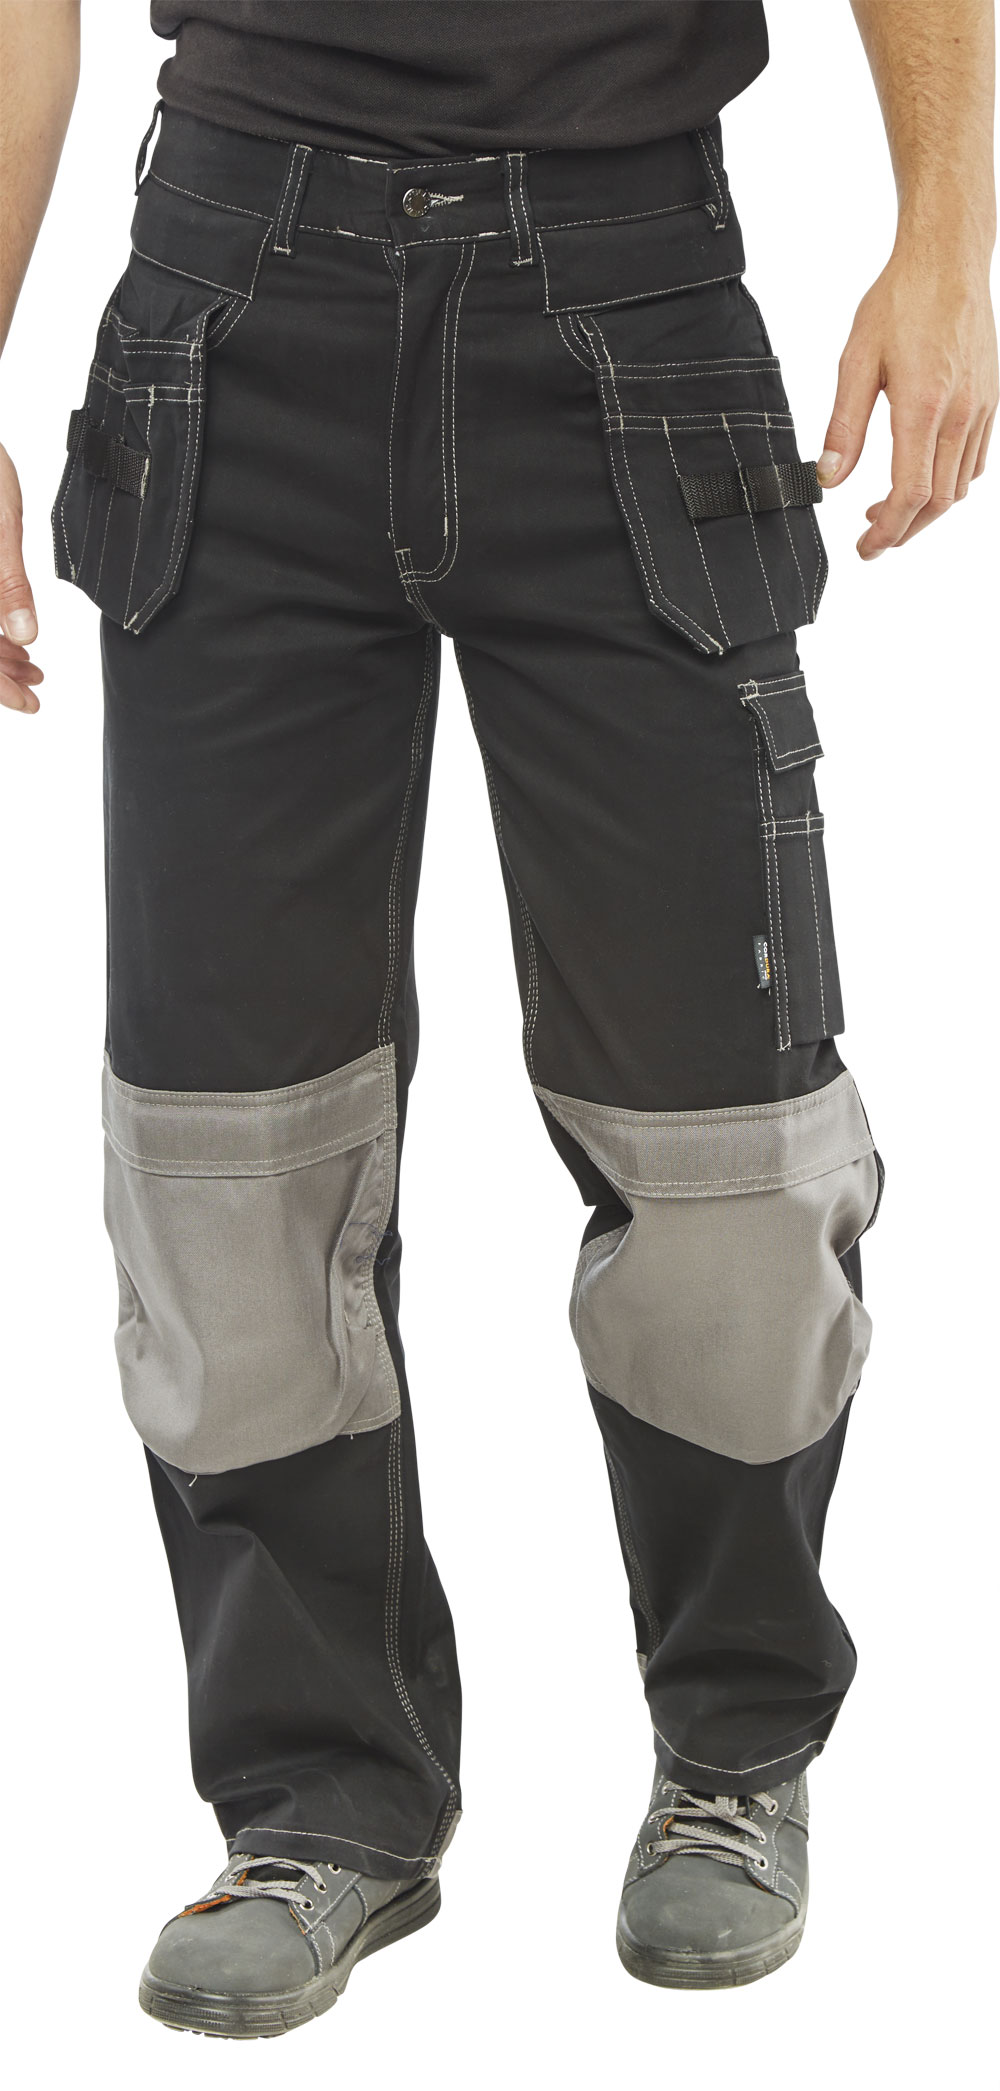 KINGTON MULTI PURPOSE POCKET TROUSERS - KMPT